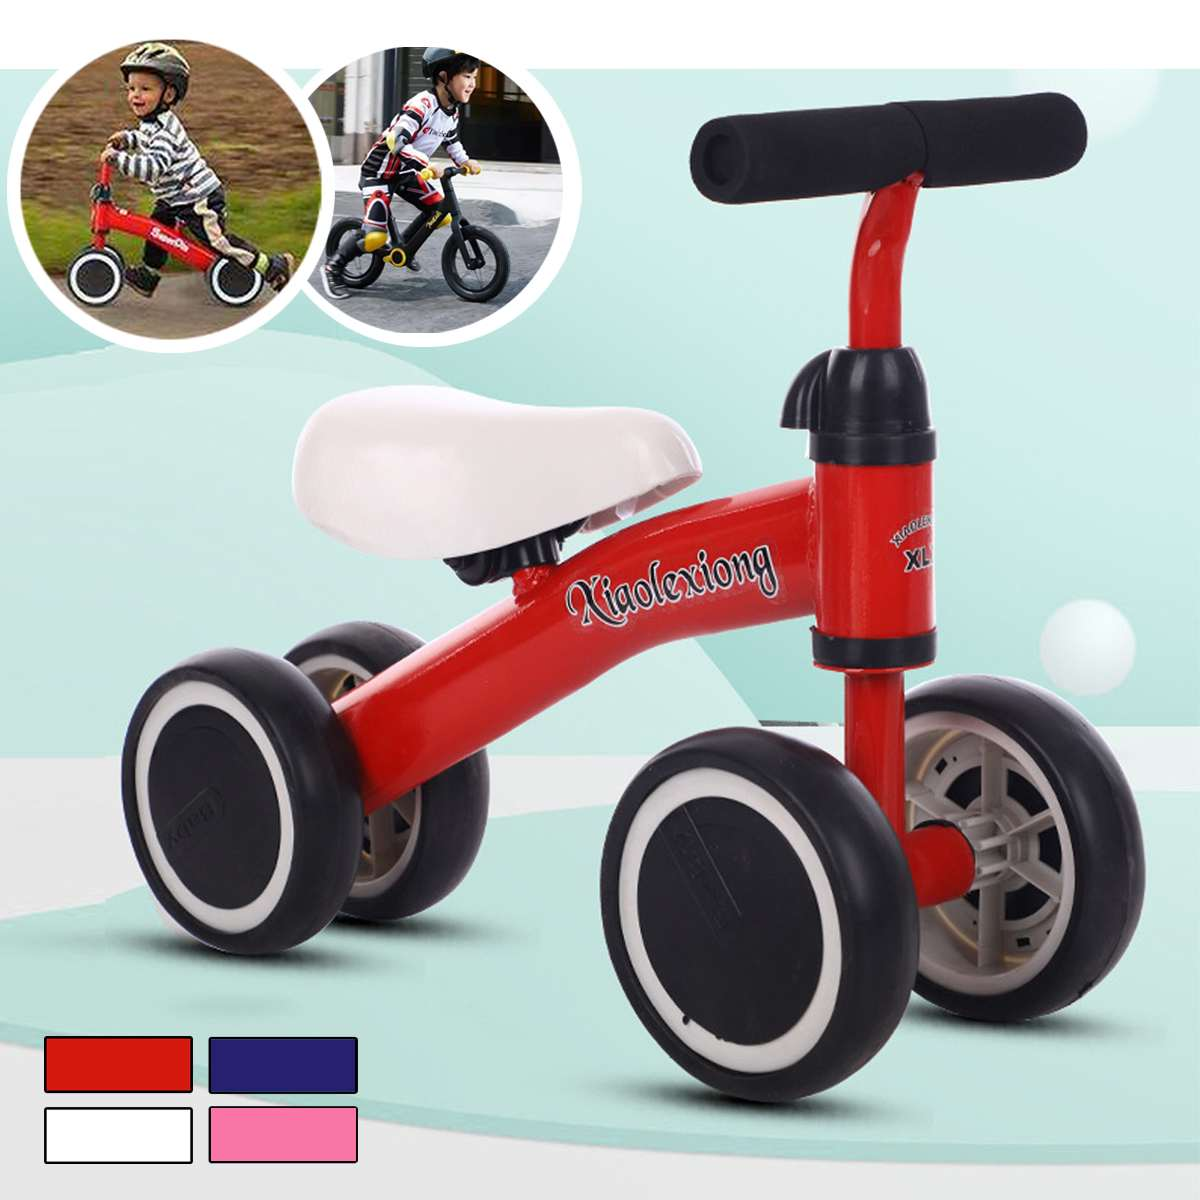 Children Balance Bike Bicycle Baby Walker Kids Outdoor Sports Ride on Car Toys for 1-3 years Old Children Learning Walk Scooter